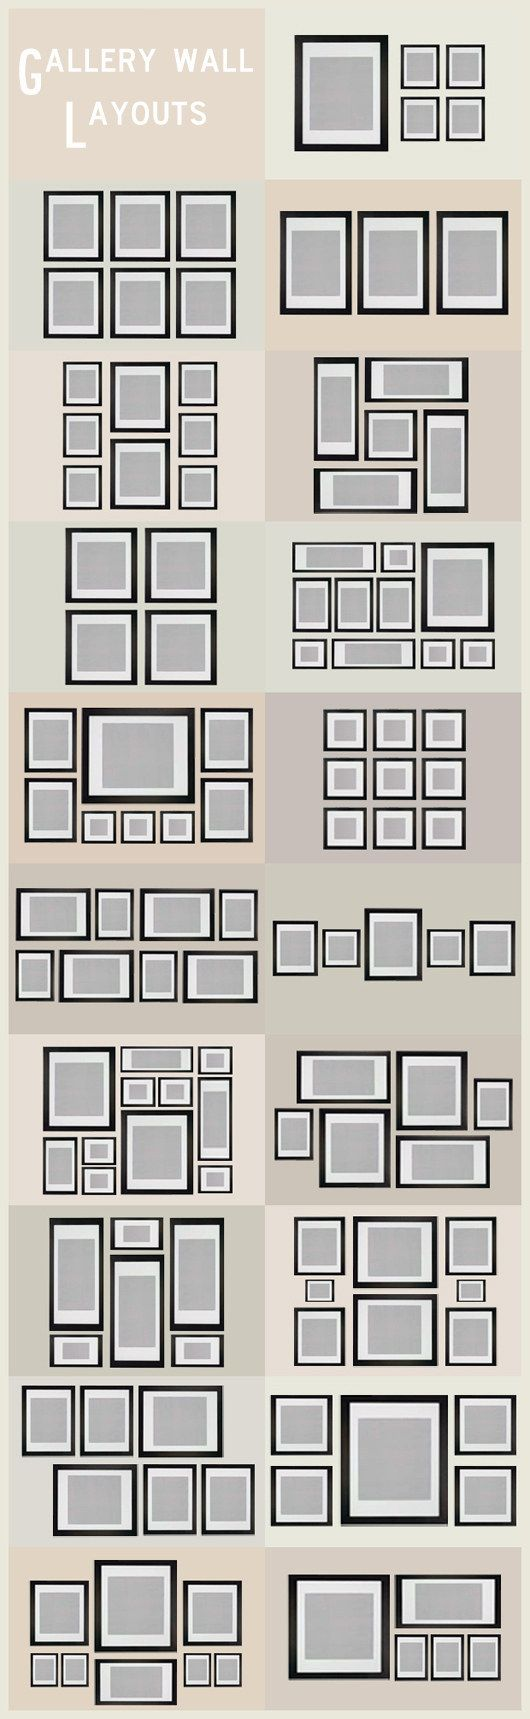 26 best wall cluster ideas images on pinterest photo walls photo gallery wall layout ideas jeuxipadfo Images